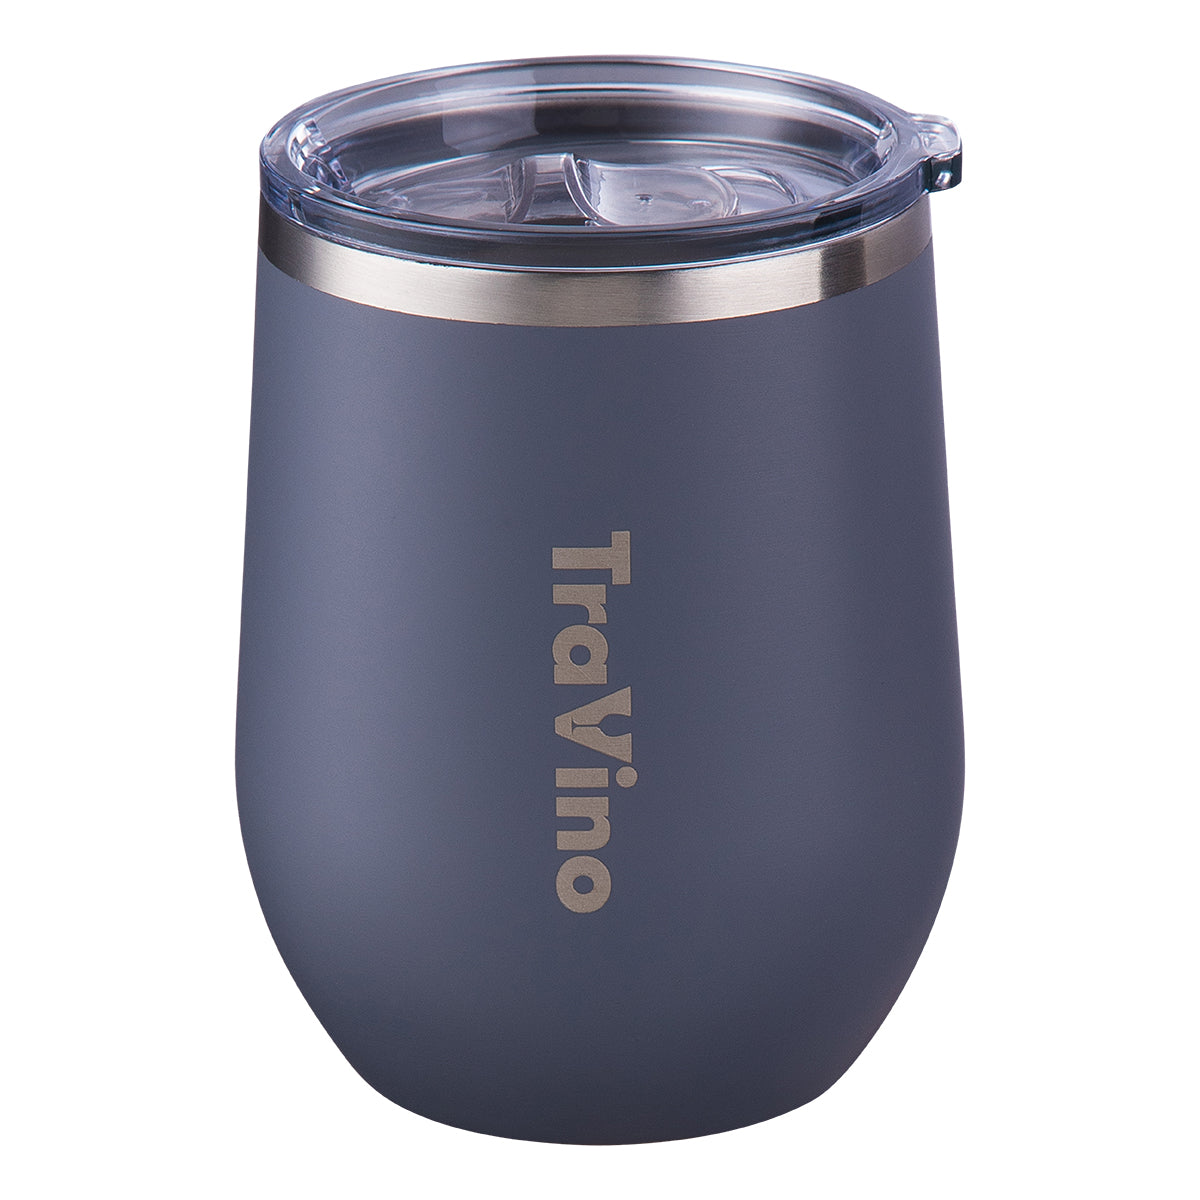 TraVino Stemless Wine Tumbler - Matte Grey